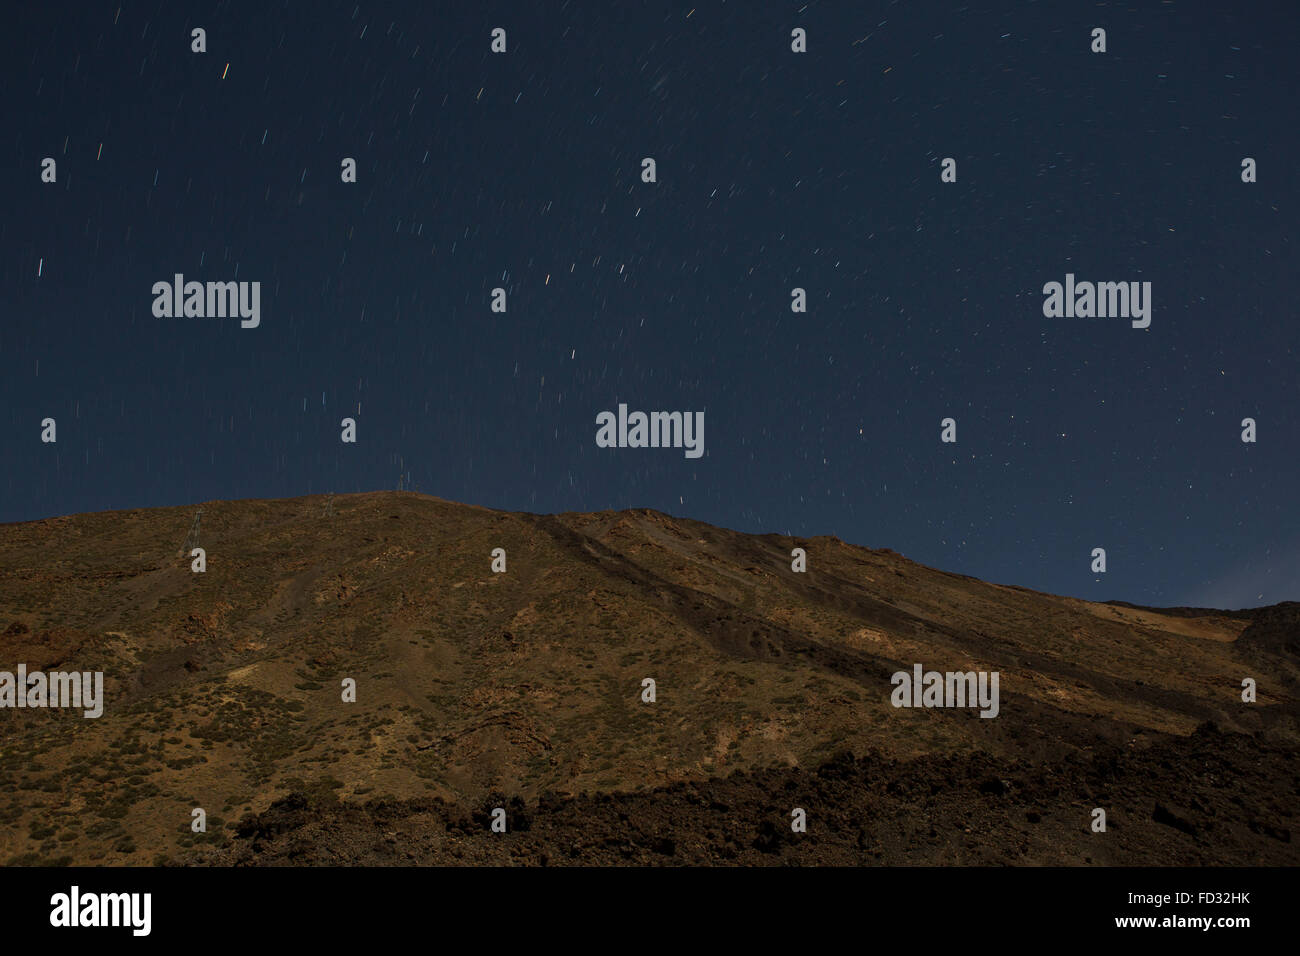 Stars in the night sky above Mount Teide in Teide National Park on Tenerife, Spain. - Stock Image